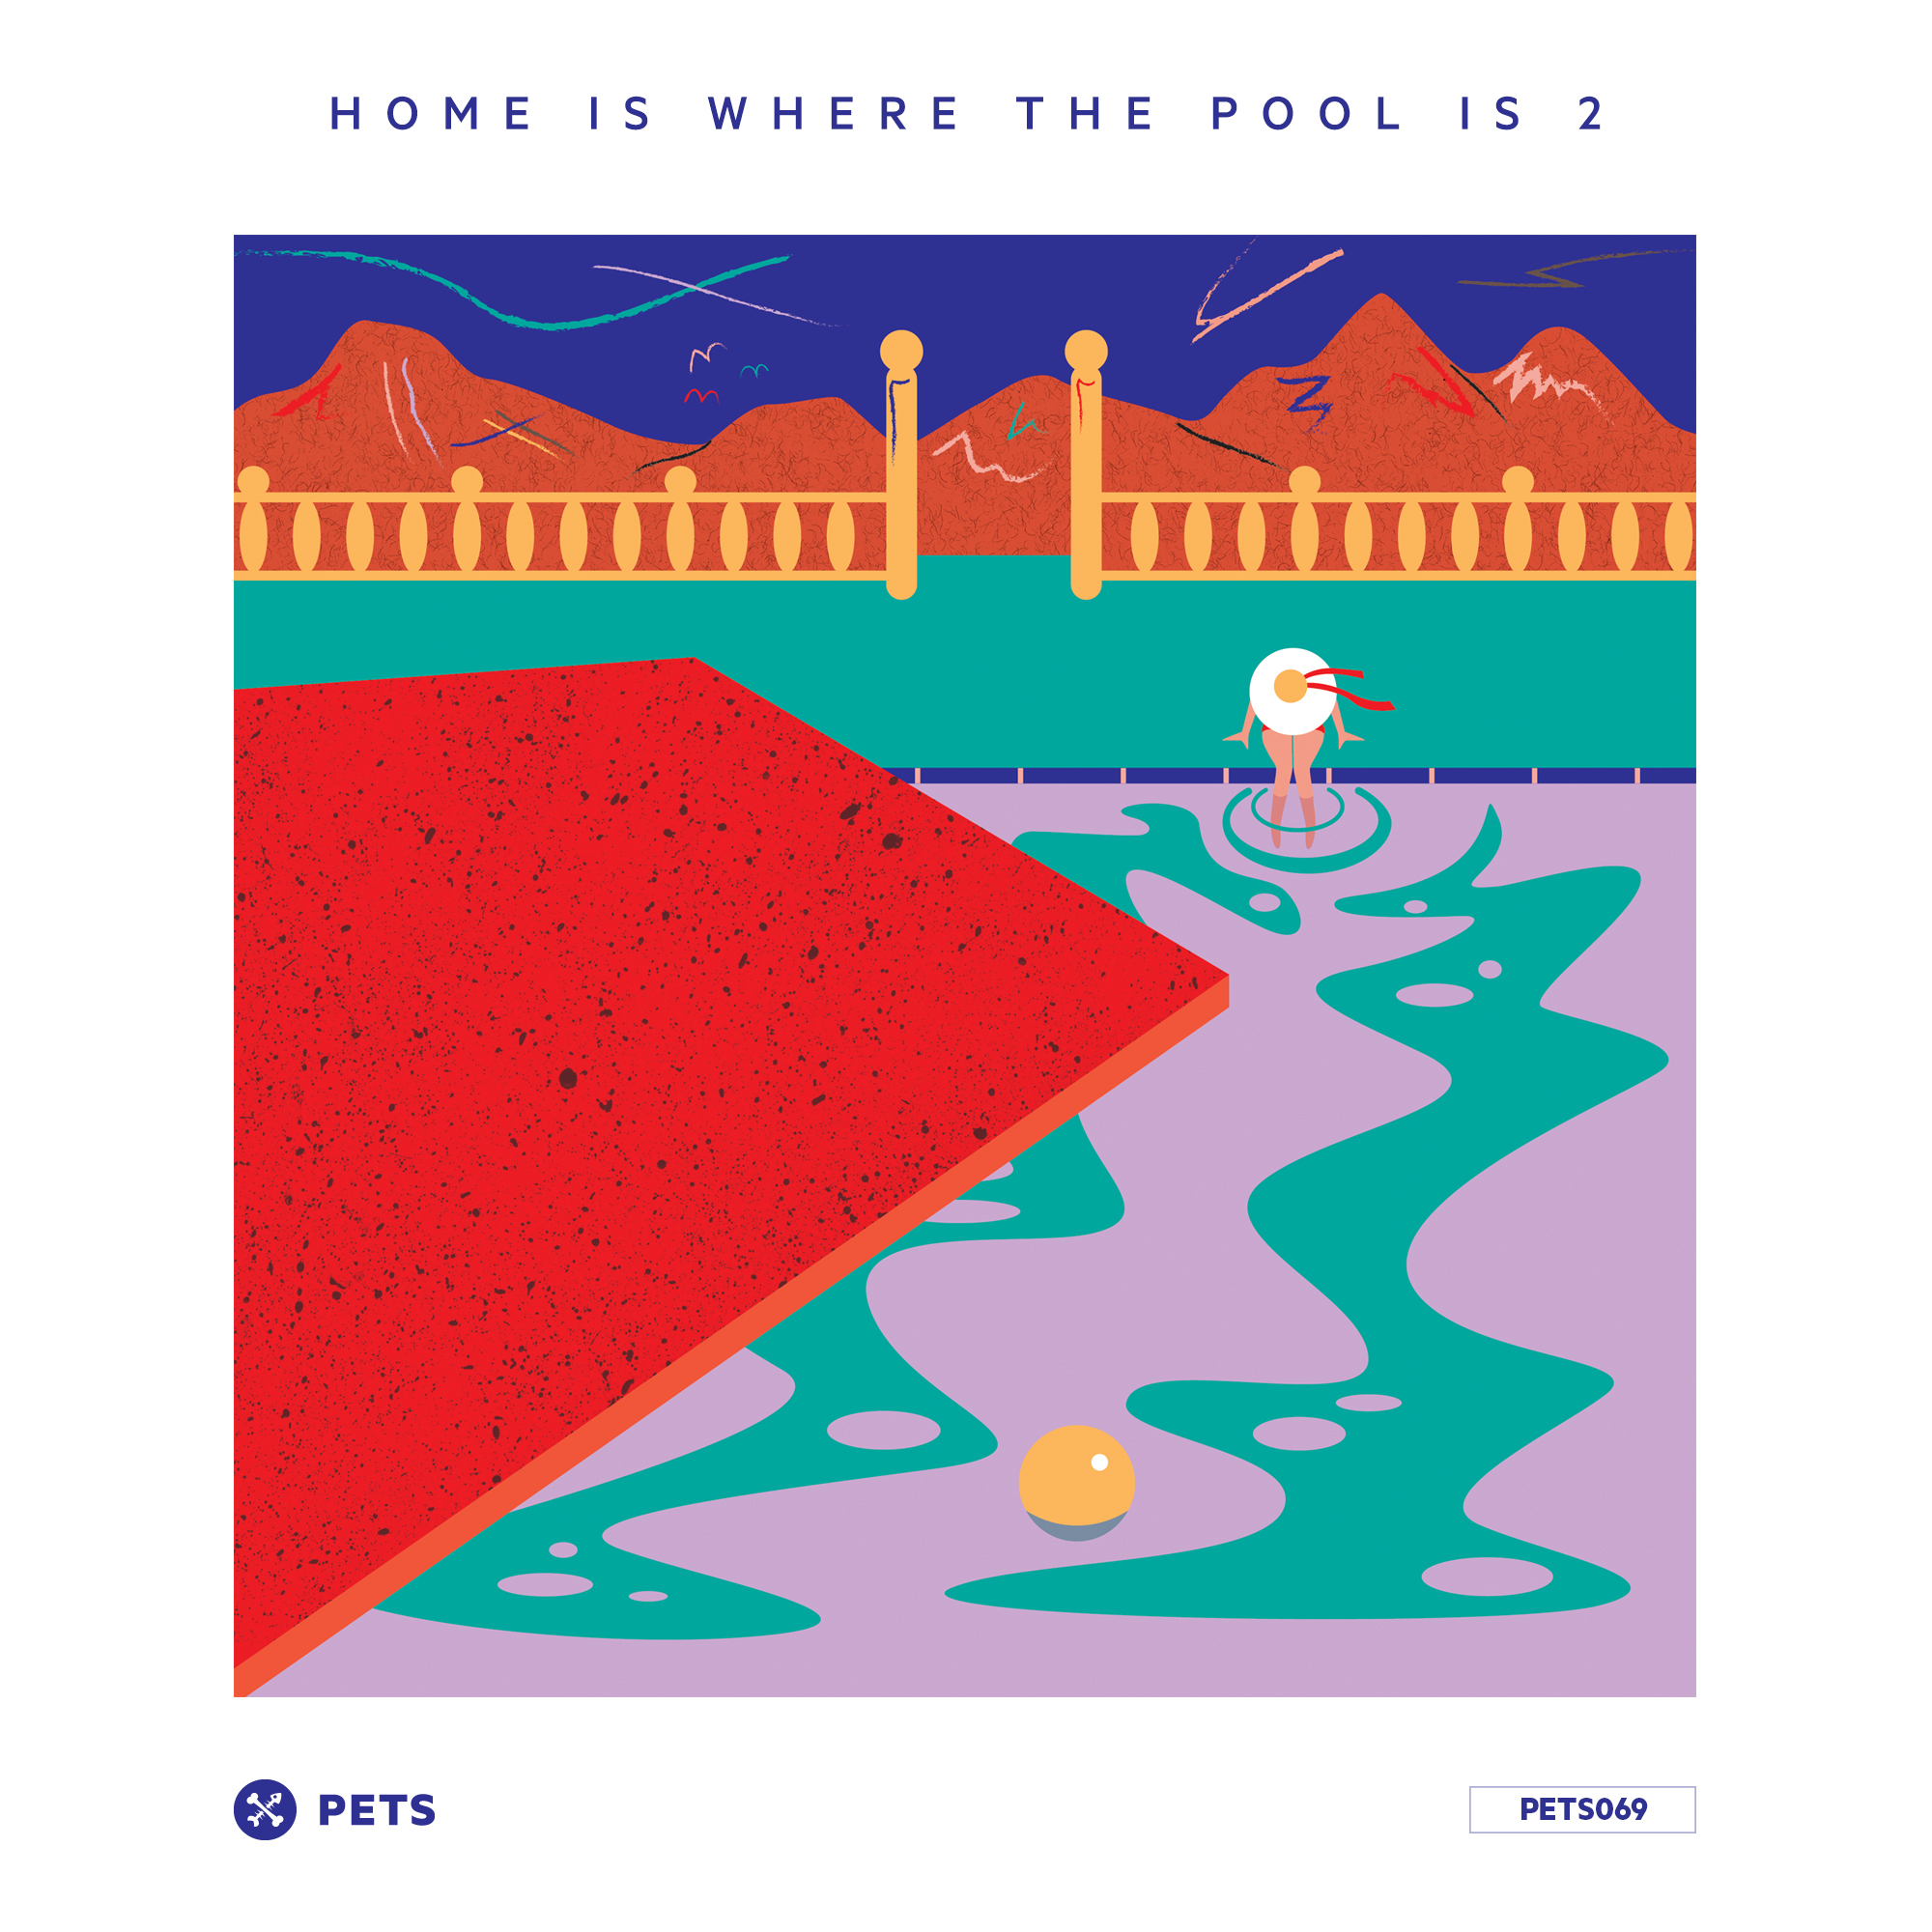 V/A Home Is Where The Pool Is 2 [PETS069]